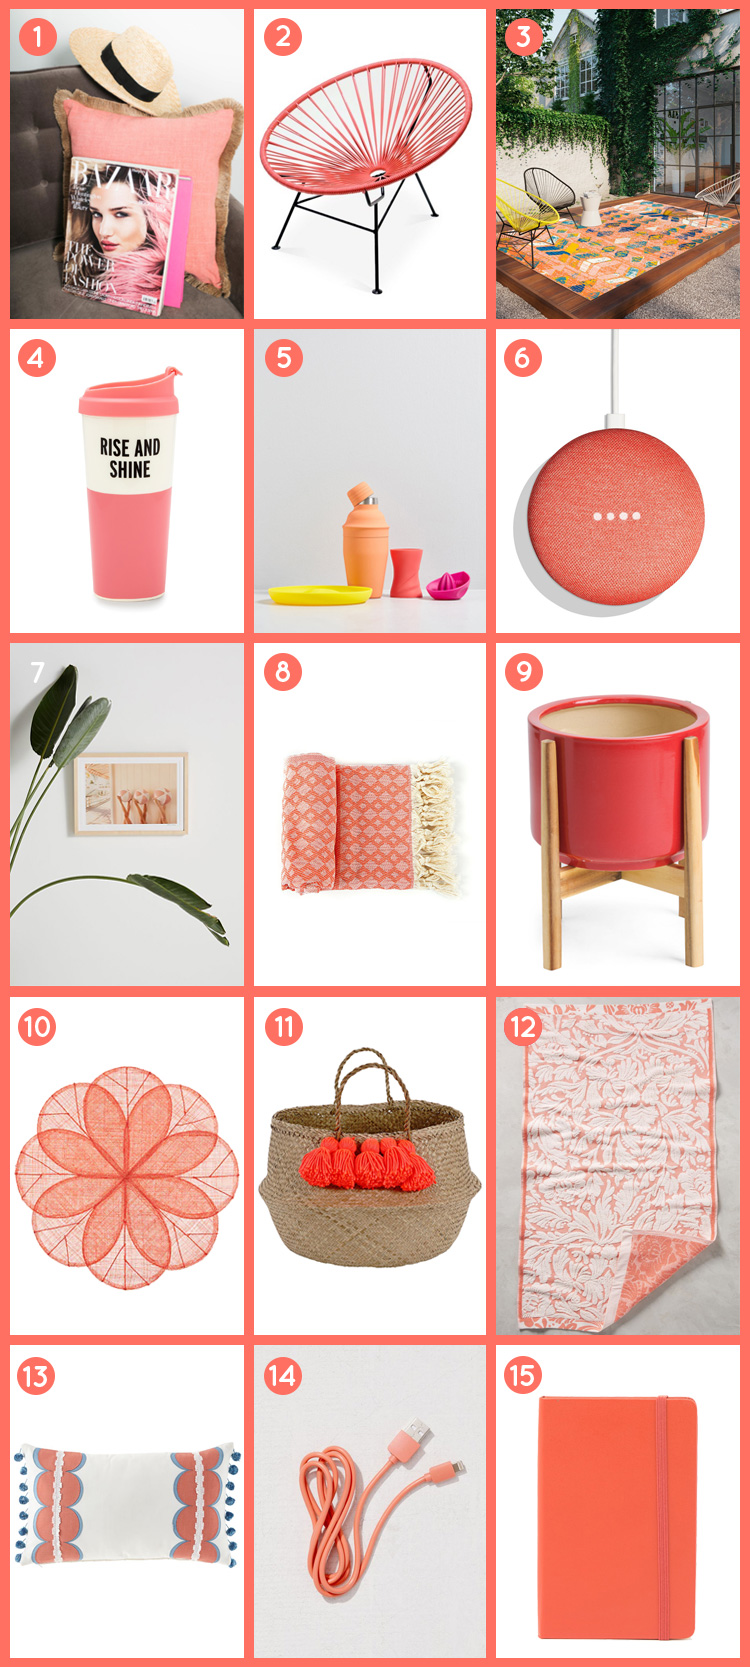 Brighten Up Your Home with Pantone's Color of the Year 2019, Living Coral | InStyleRooms.com/Blog